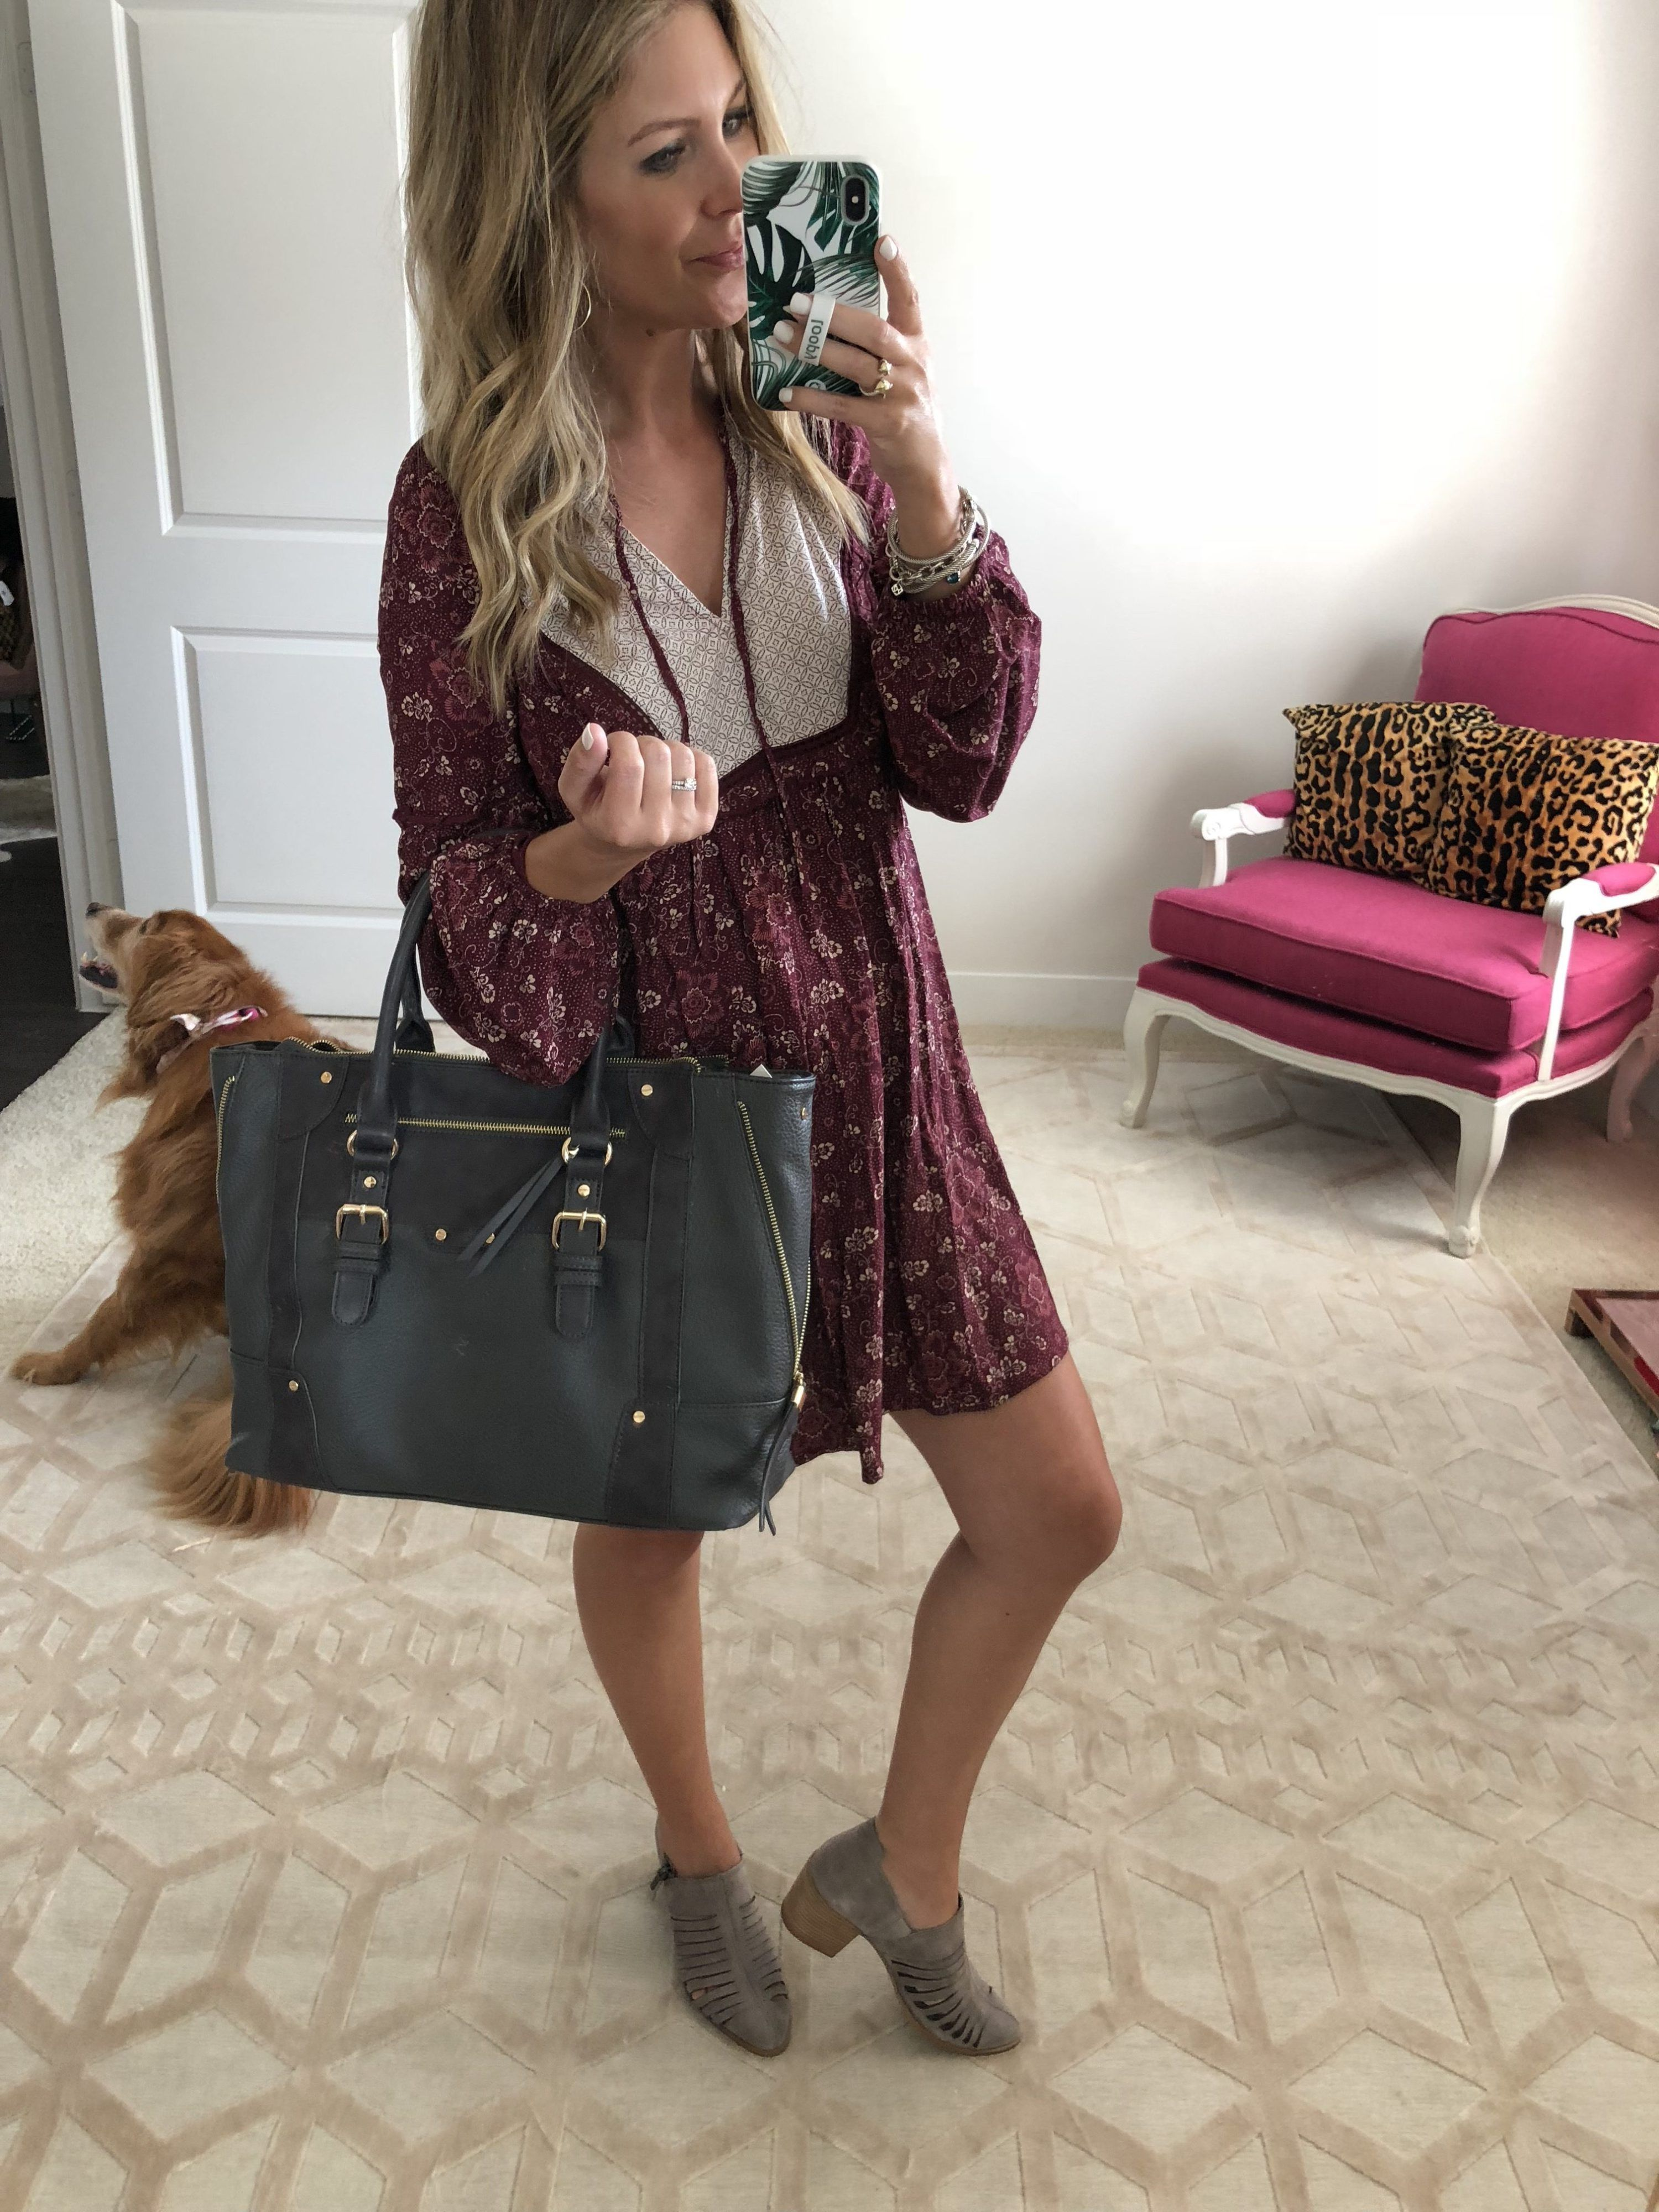 9a4903db1 Top Twelve Purchases from Nordstrom Sale + Public Access Info - Little  Lovelies Blog